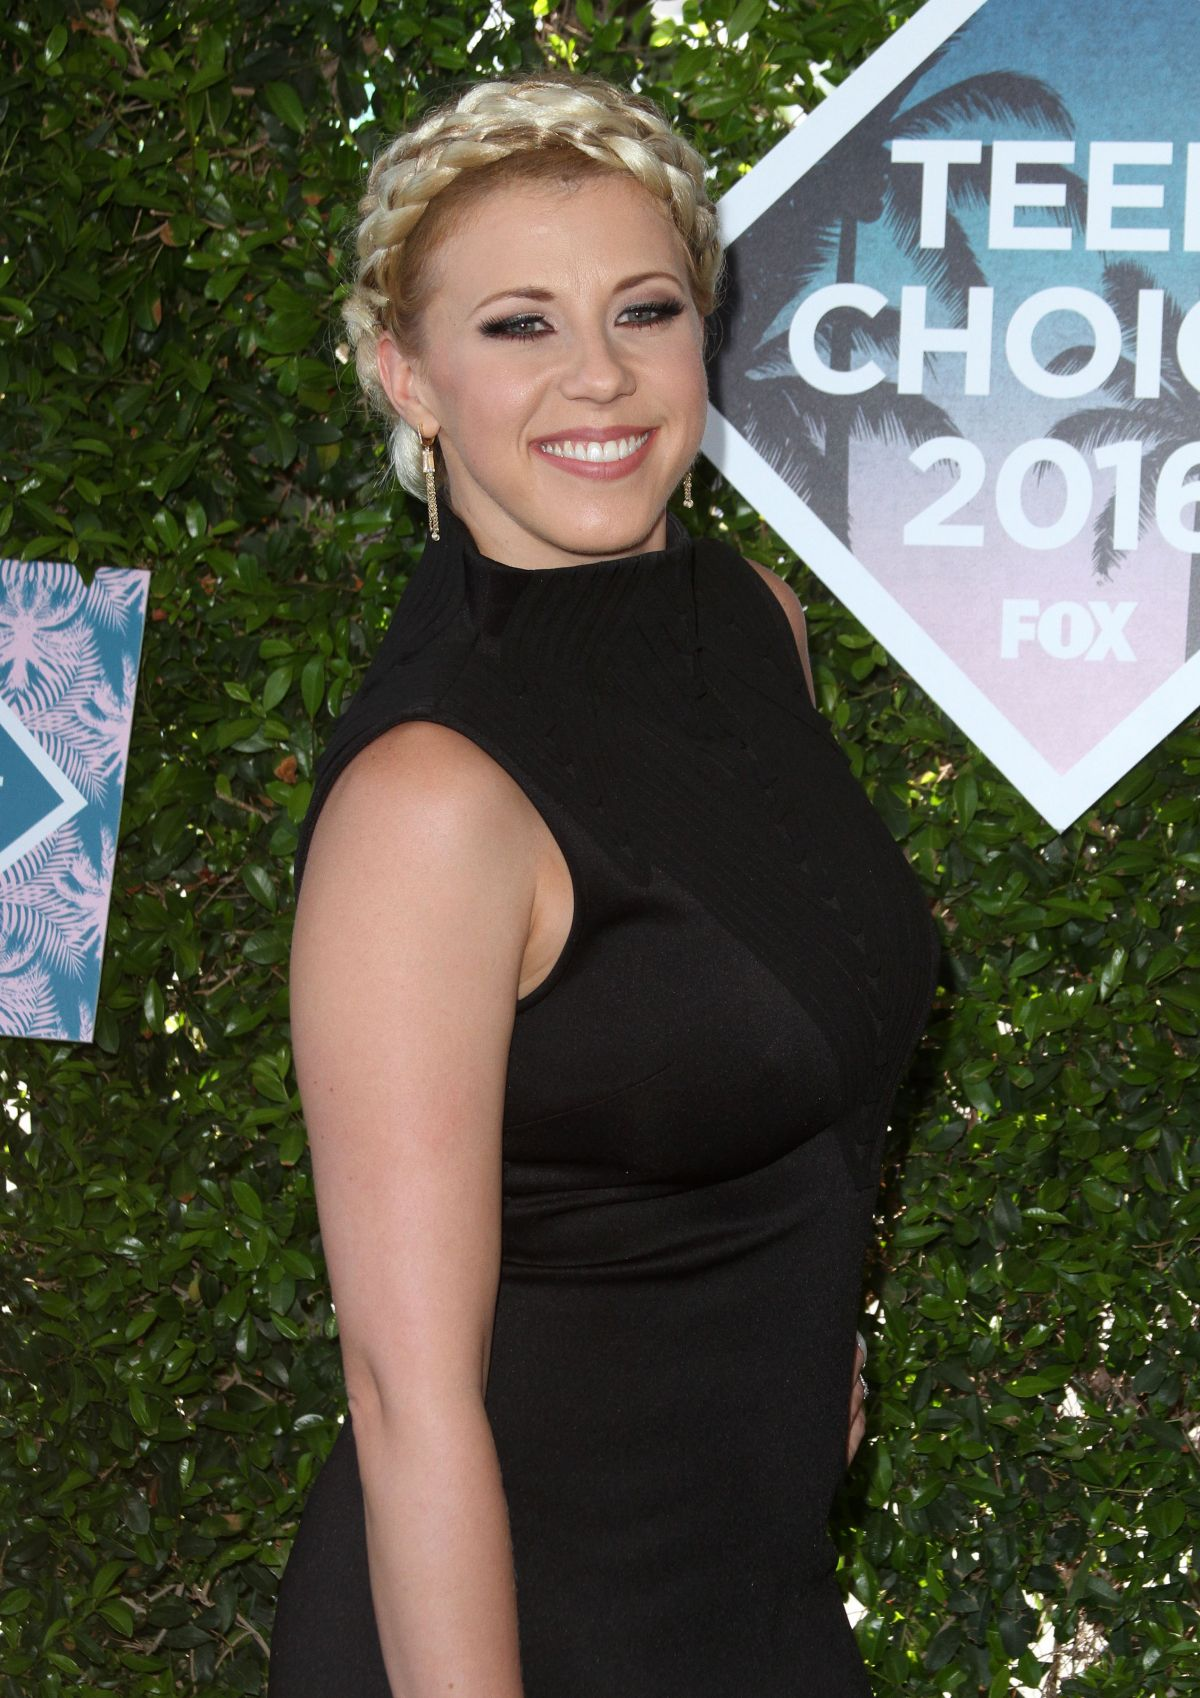 JODIE SWEETIN at Teen Choice Awards 2016 in Inglewood 07/31/2016